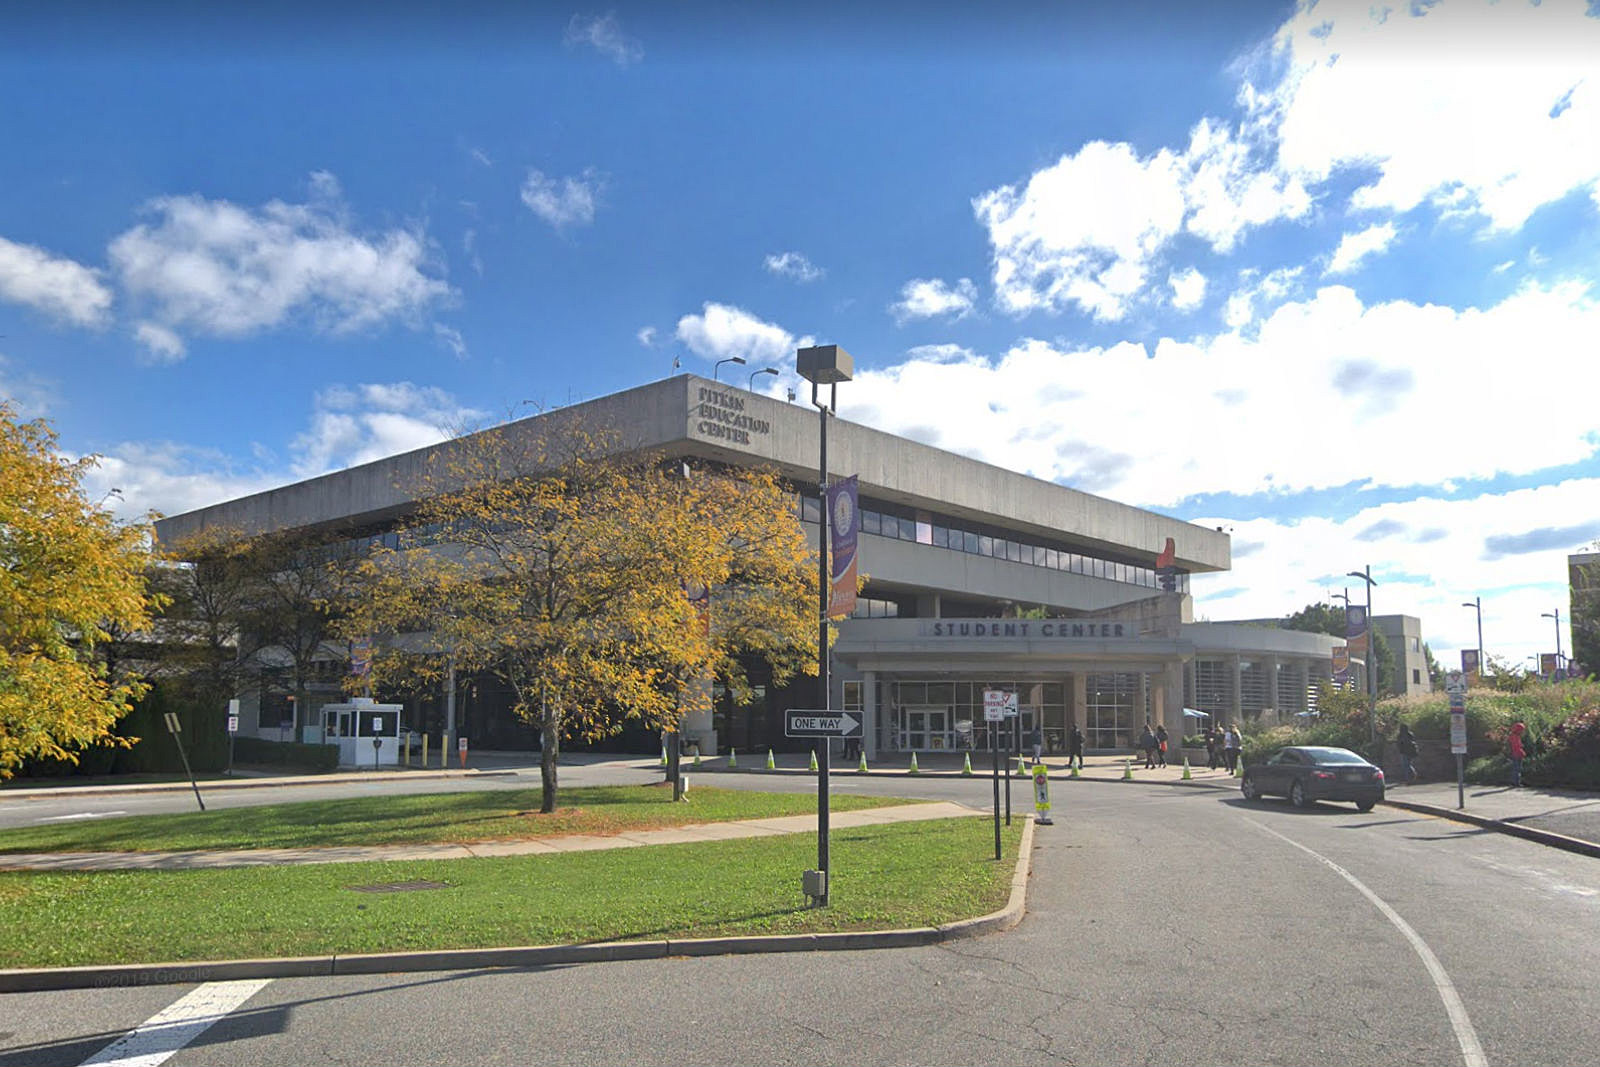 All Clear Bergen Community College Evacuated Over Bomb Threat